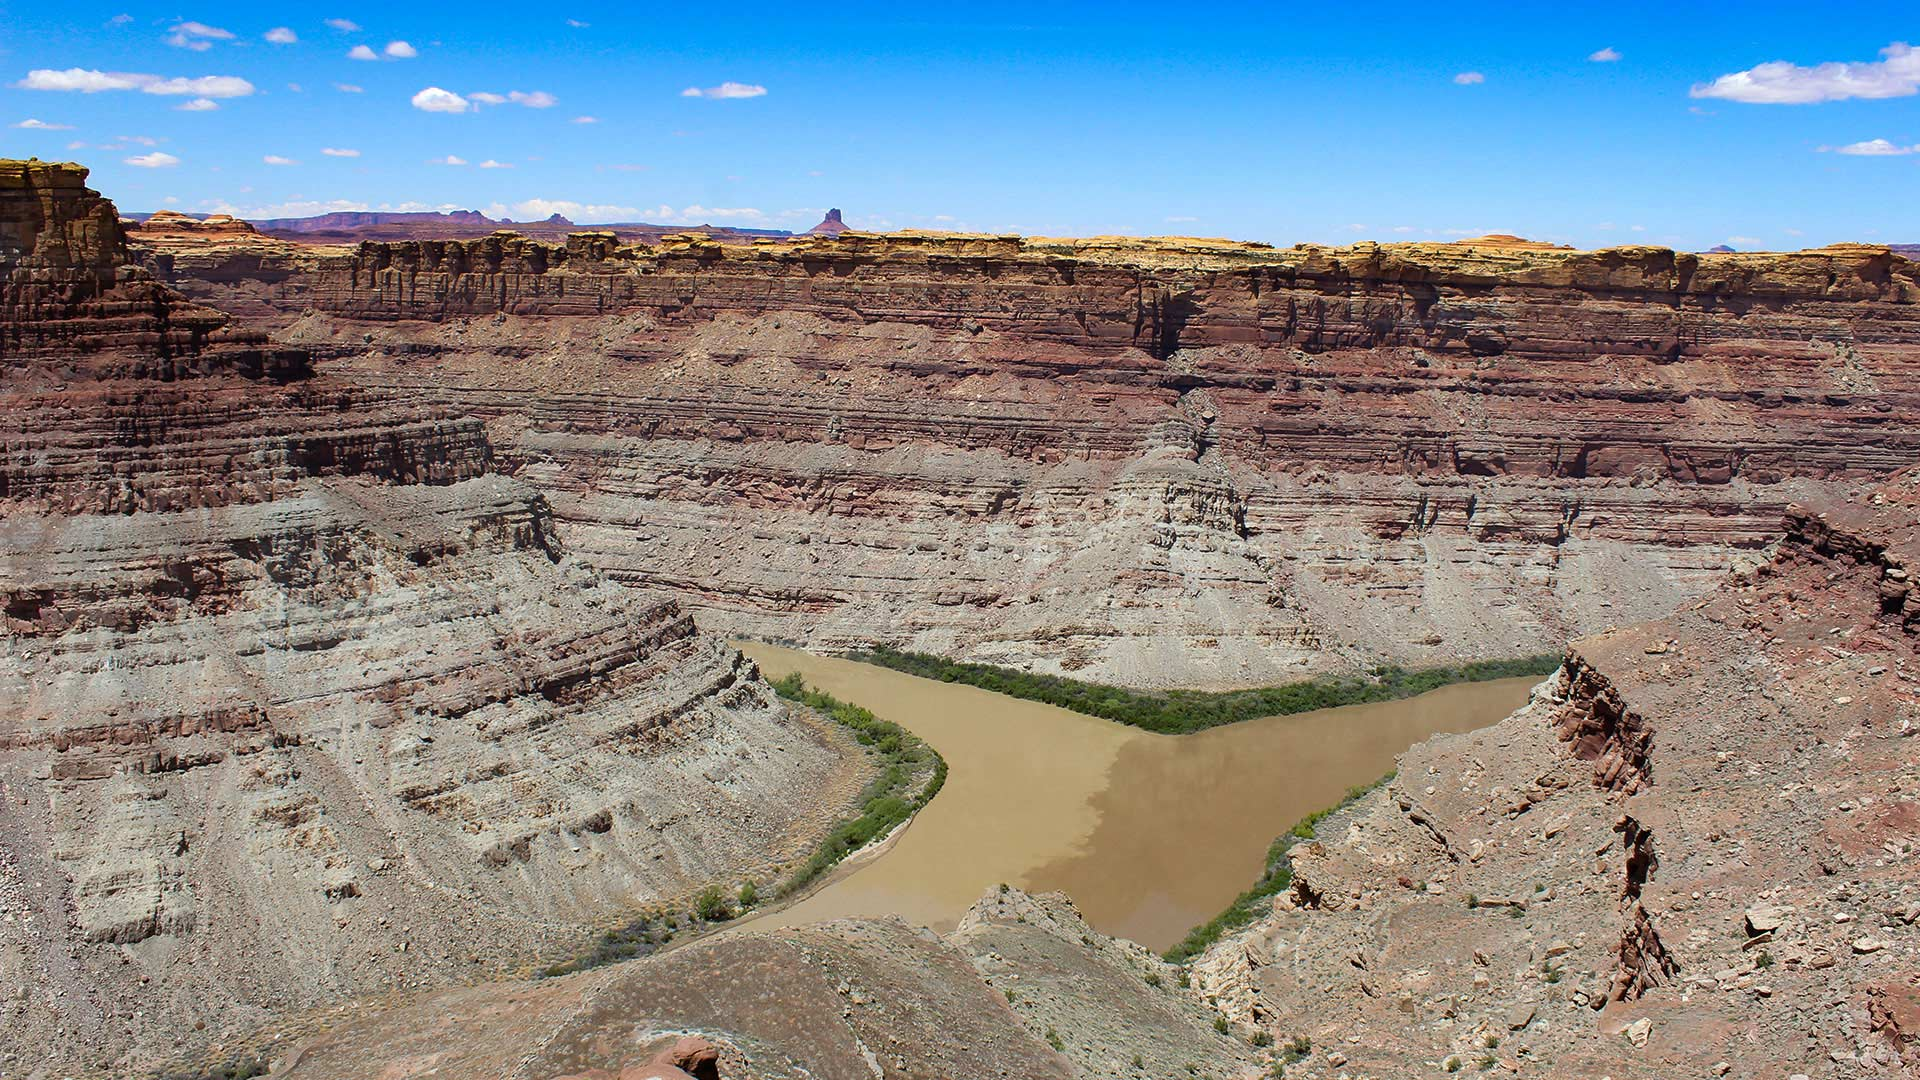 The Green and Colorado Rivers meet at Canyonlands National Park in Utah.